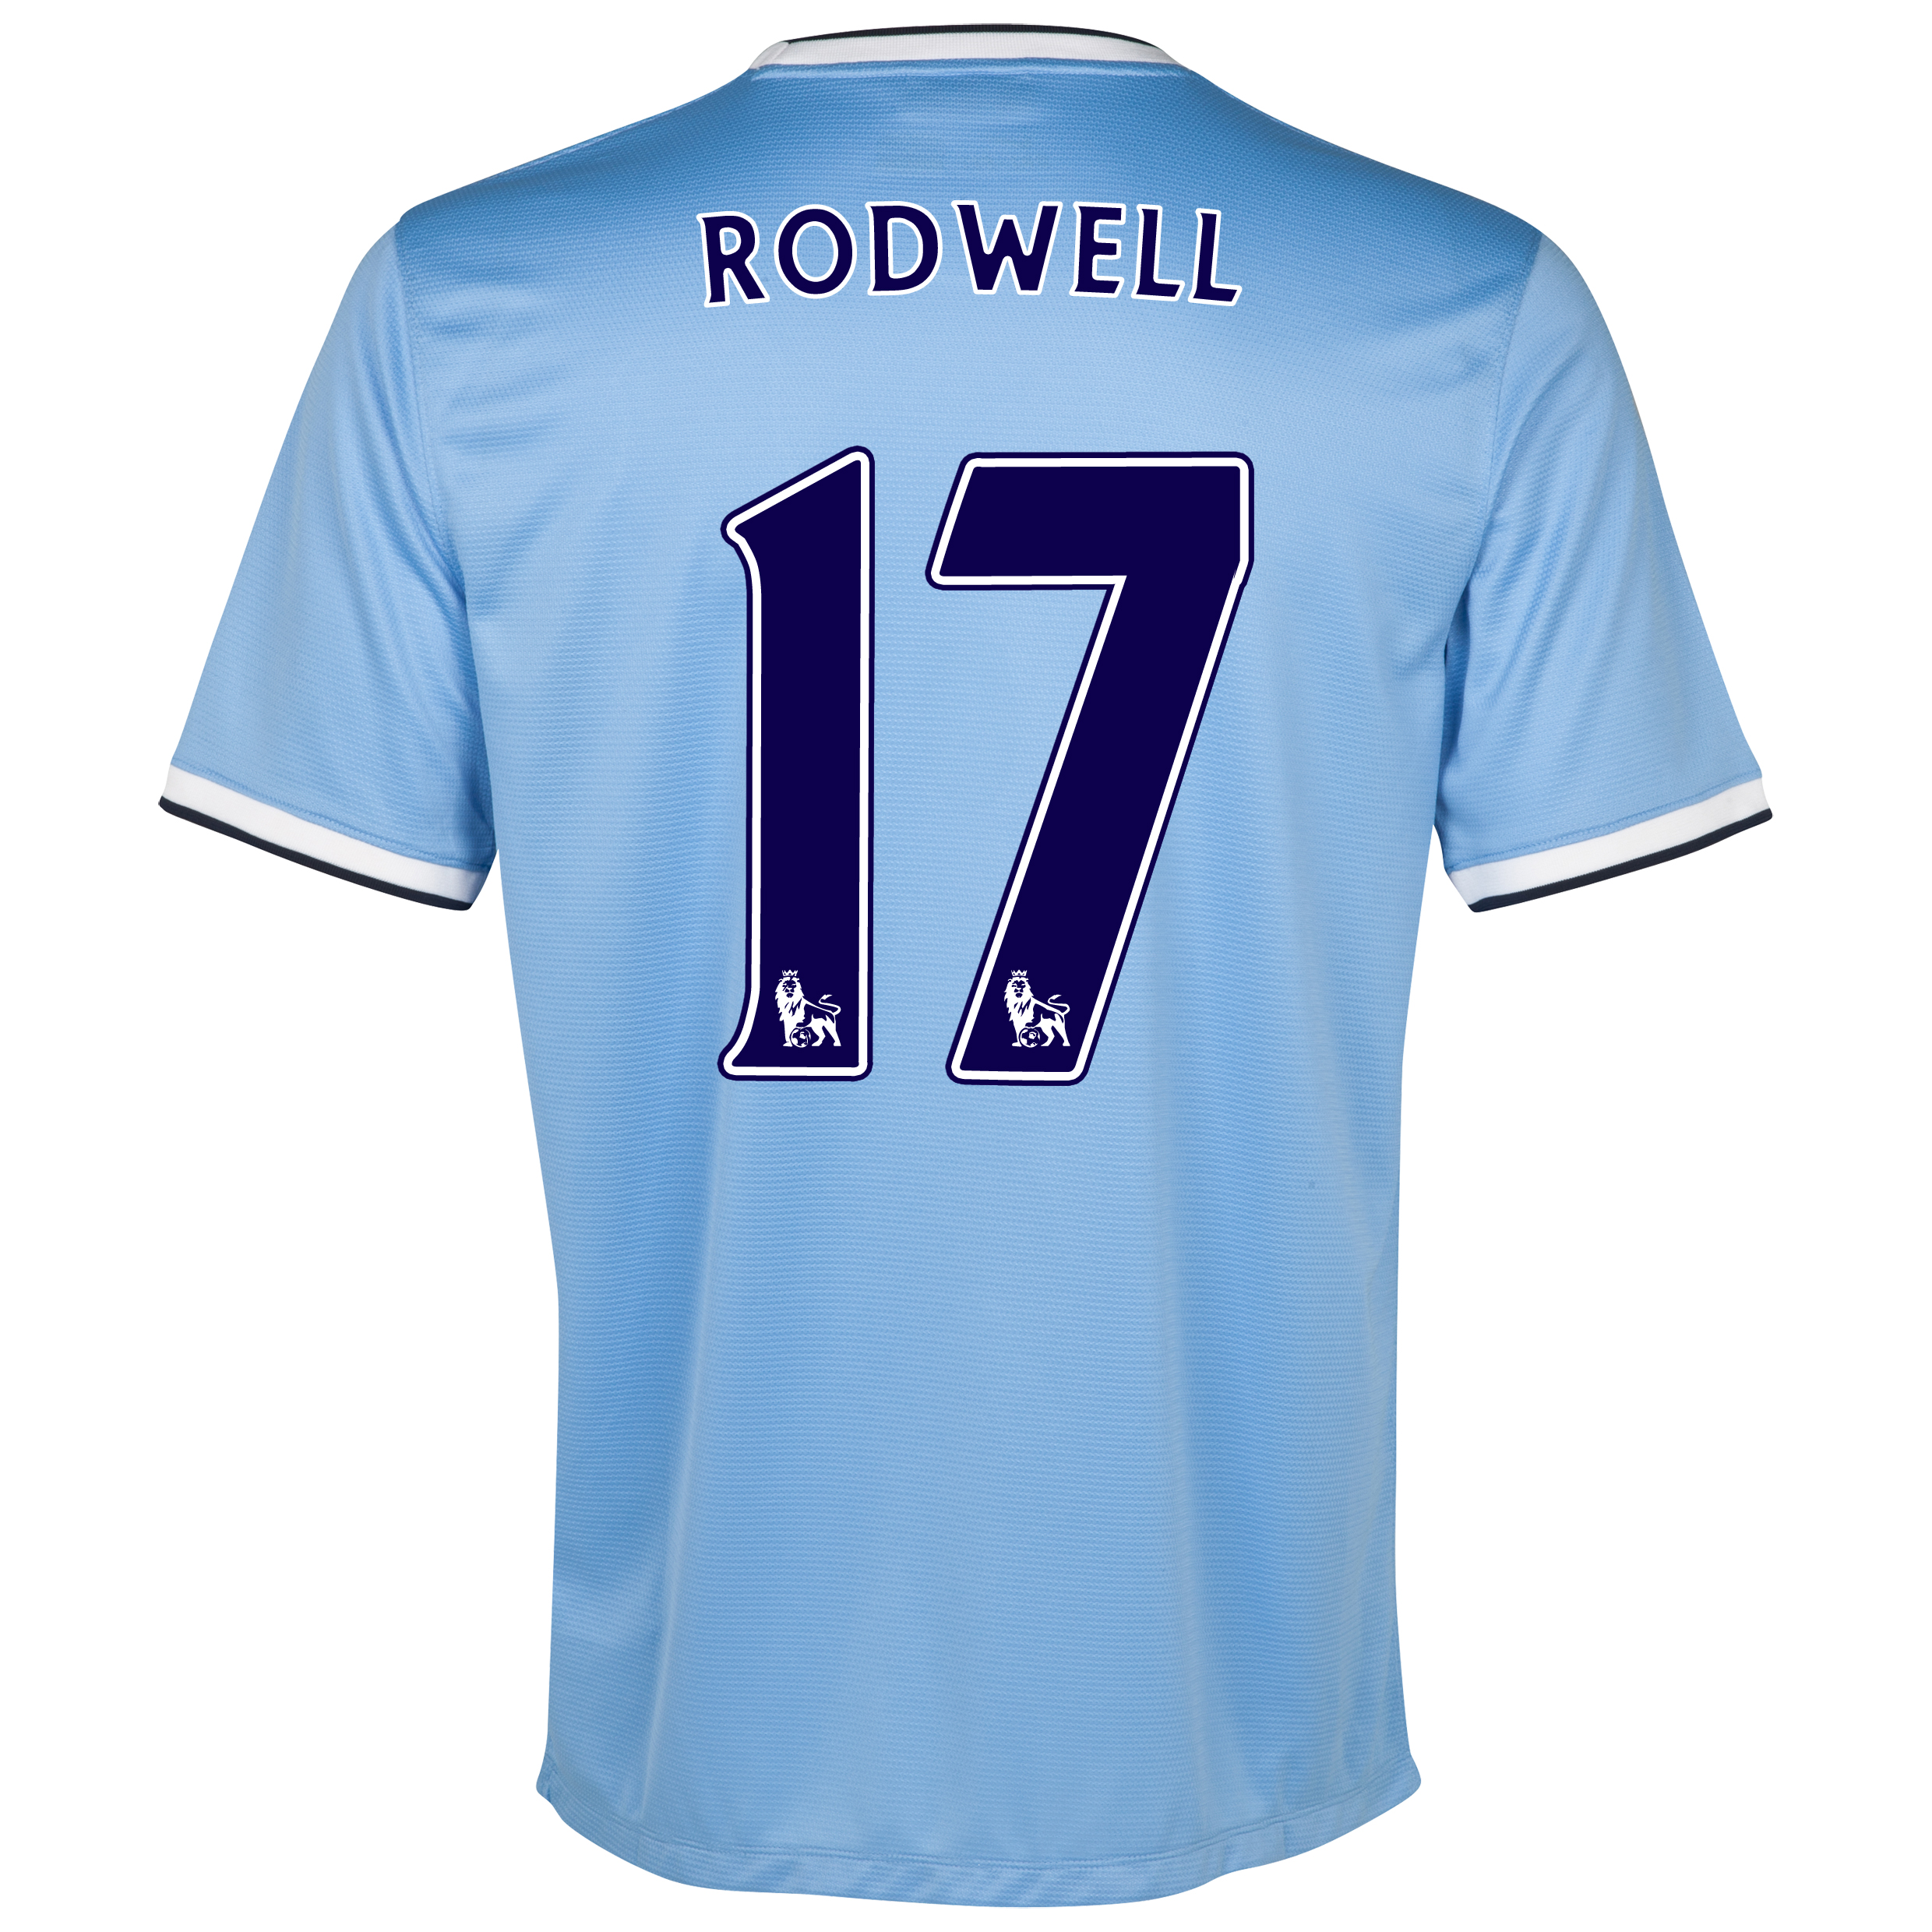 Manchester City Home Shirt 2013/14 with Rodwell 17 printing